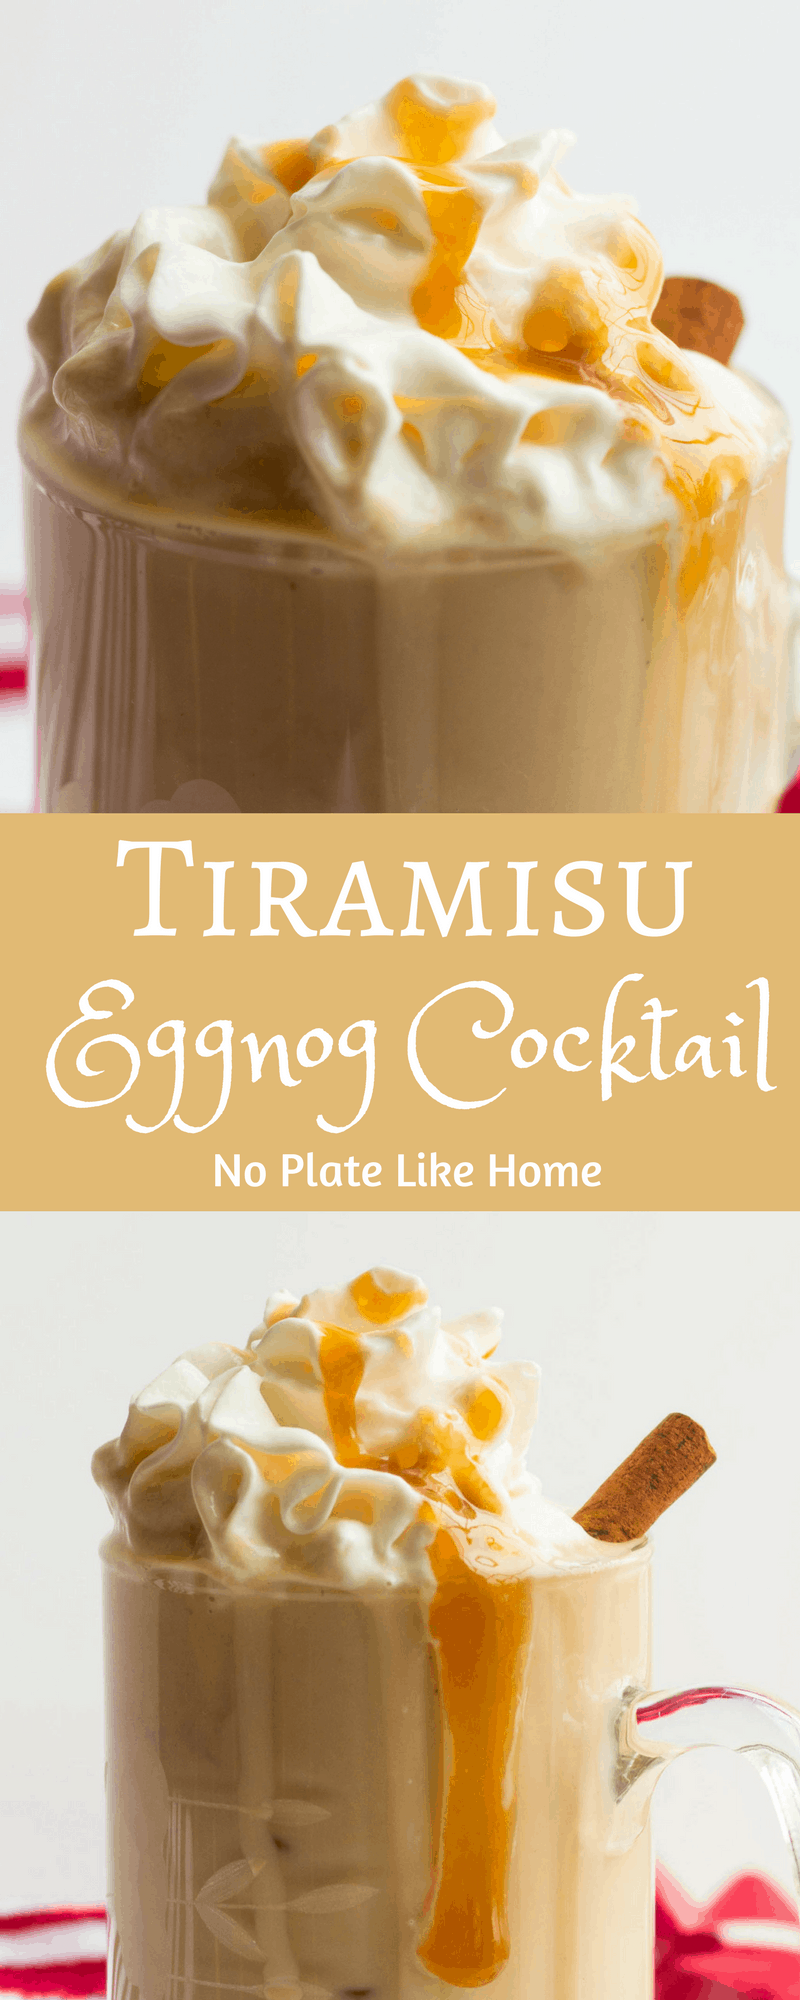 Tiramisu Eggnog Cocktail